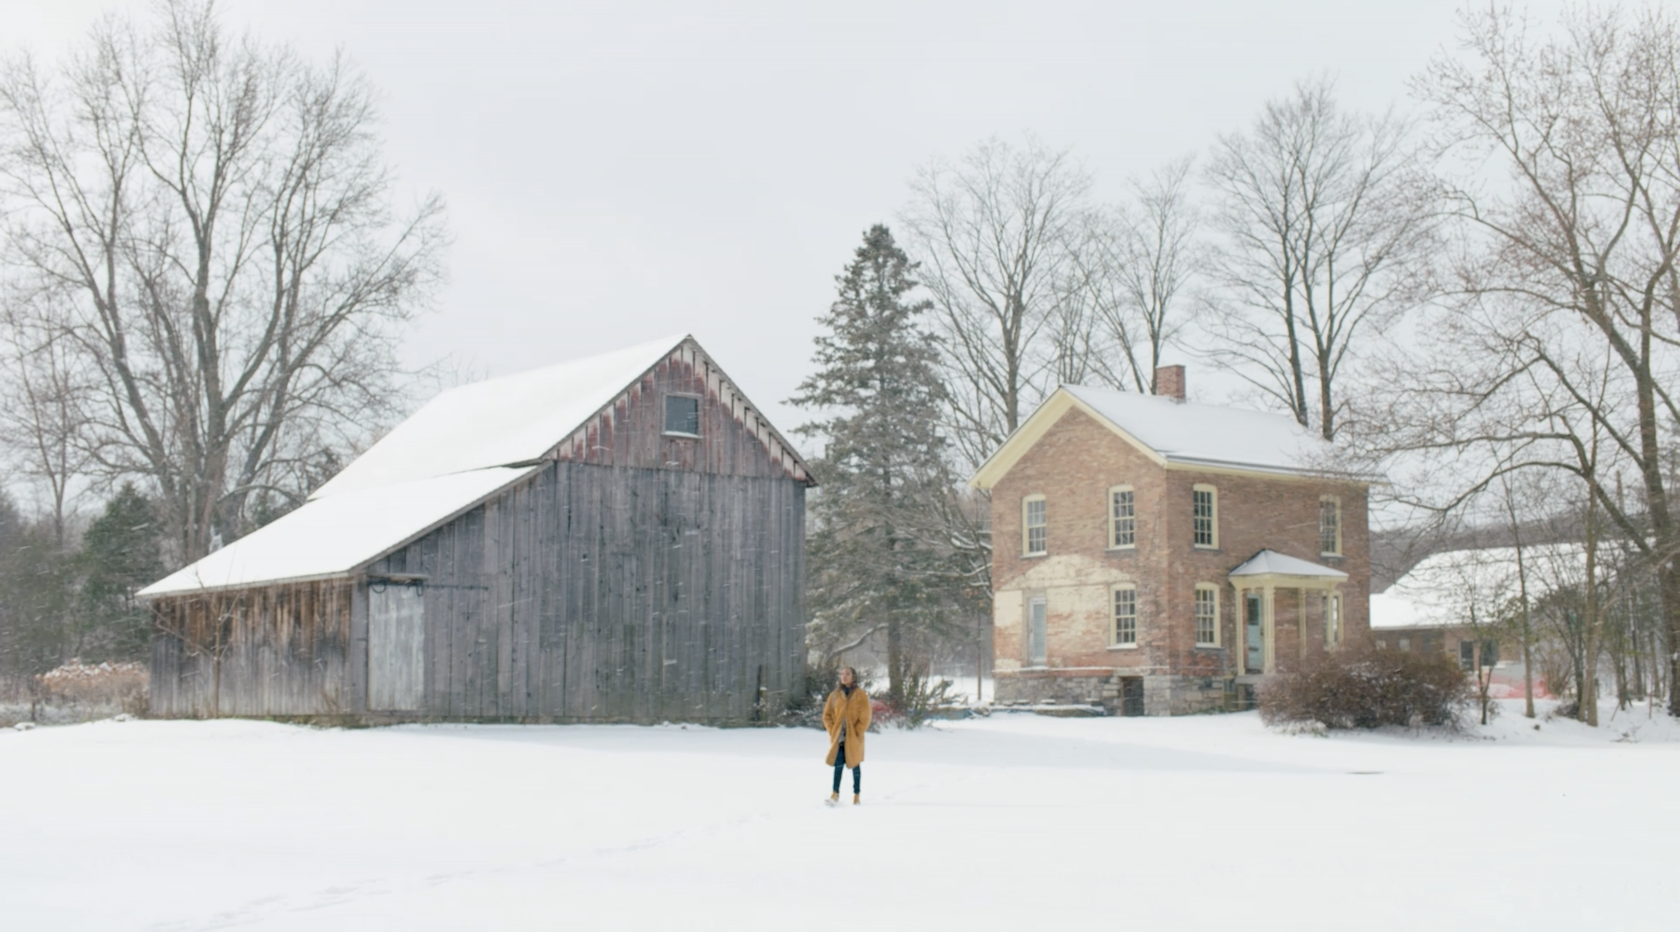 A visitor walks in the snow between a barn and two story brick building